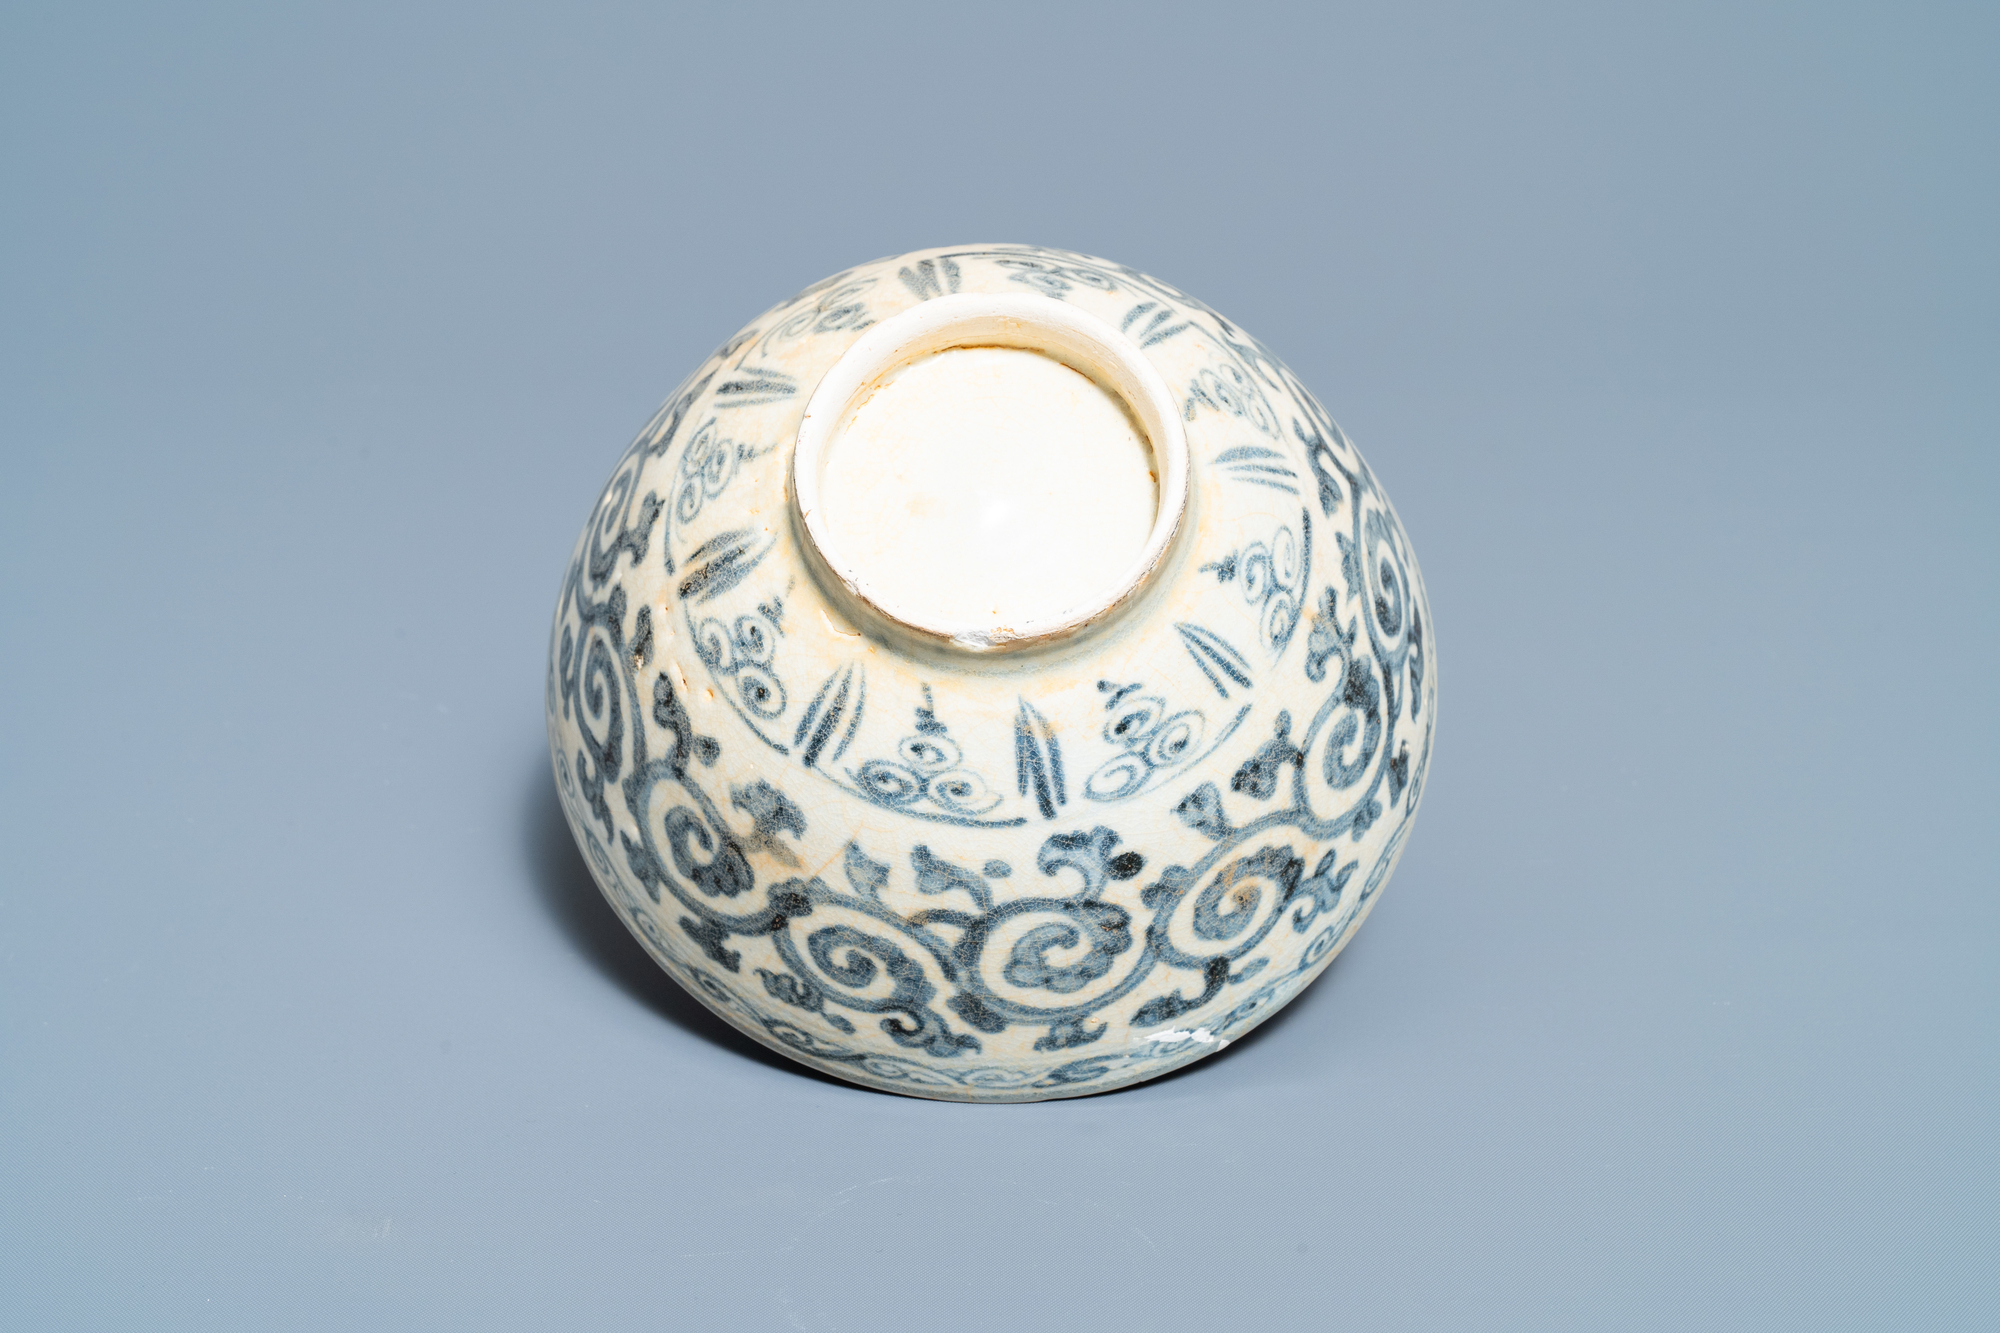 Four blue and white Vietnamese or Annamese ceramics and a Chinese jarlet, 15/16th C. - Image 6 of 12